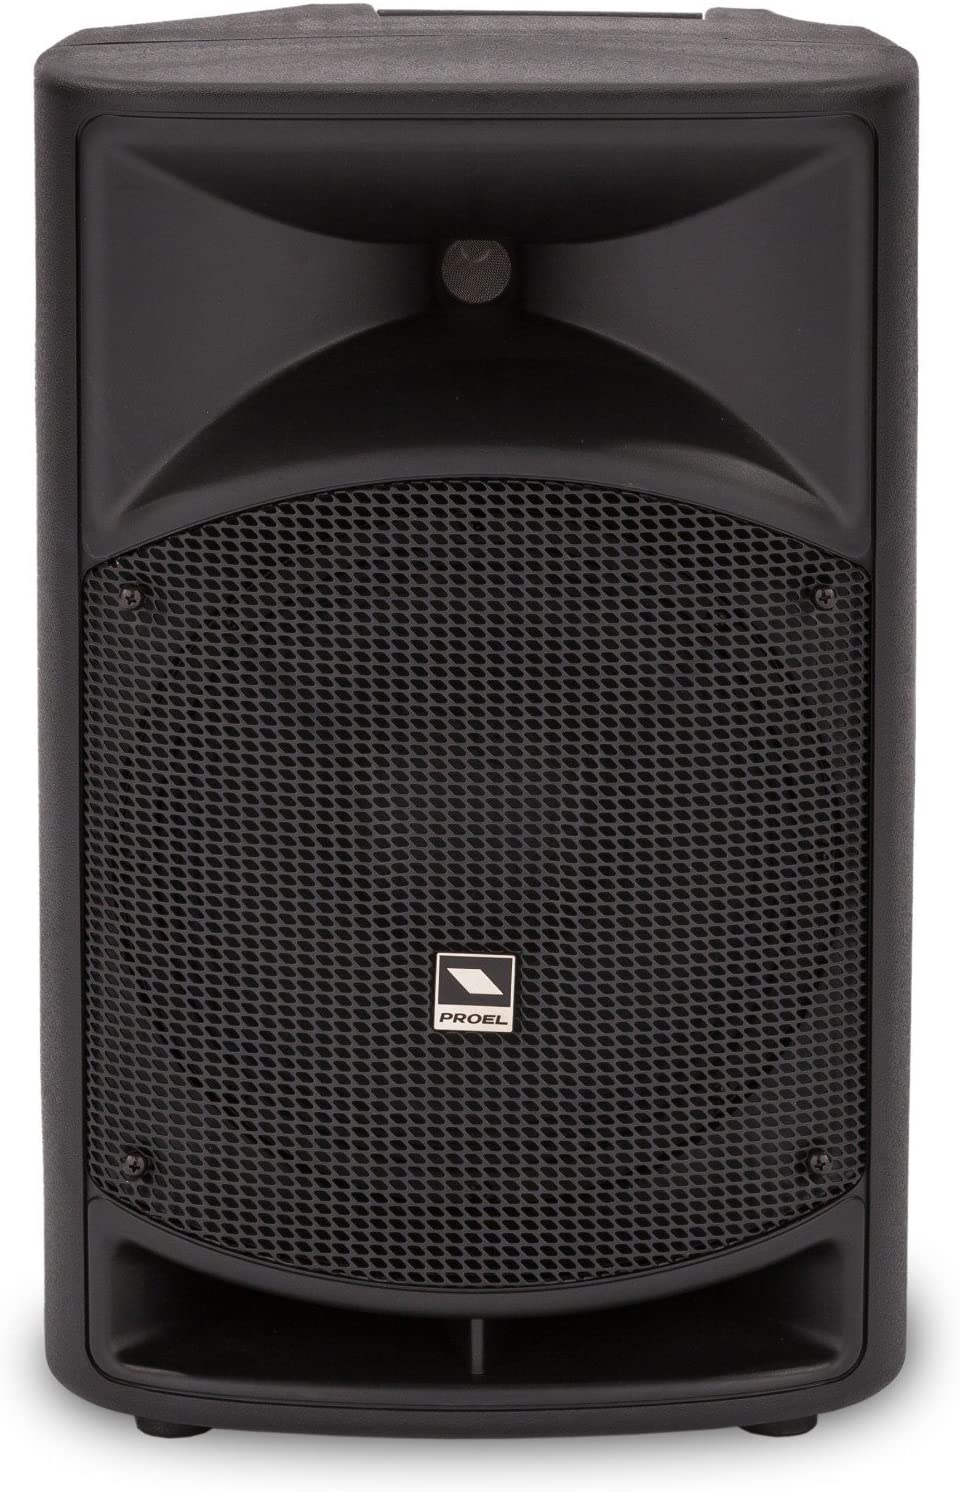 PROEL WAVE15A Monitor Diffusore Audio 15 a due vie bi-amplificato Nero Attivo con ingressi multipli e lettore MP3 dotato di connettivit/à BLUETOOTH